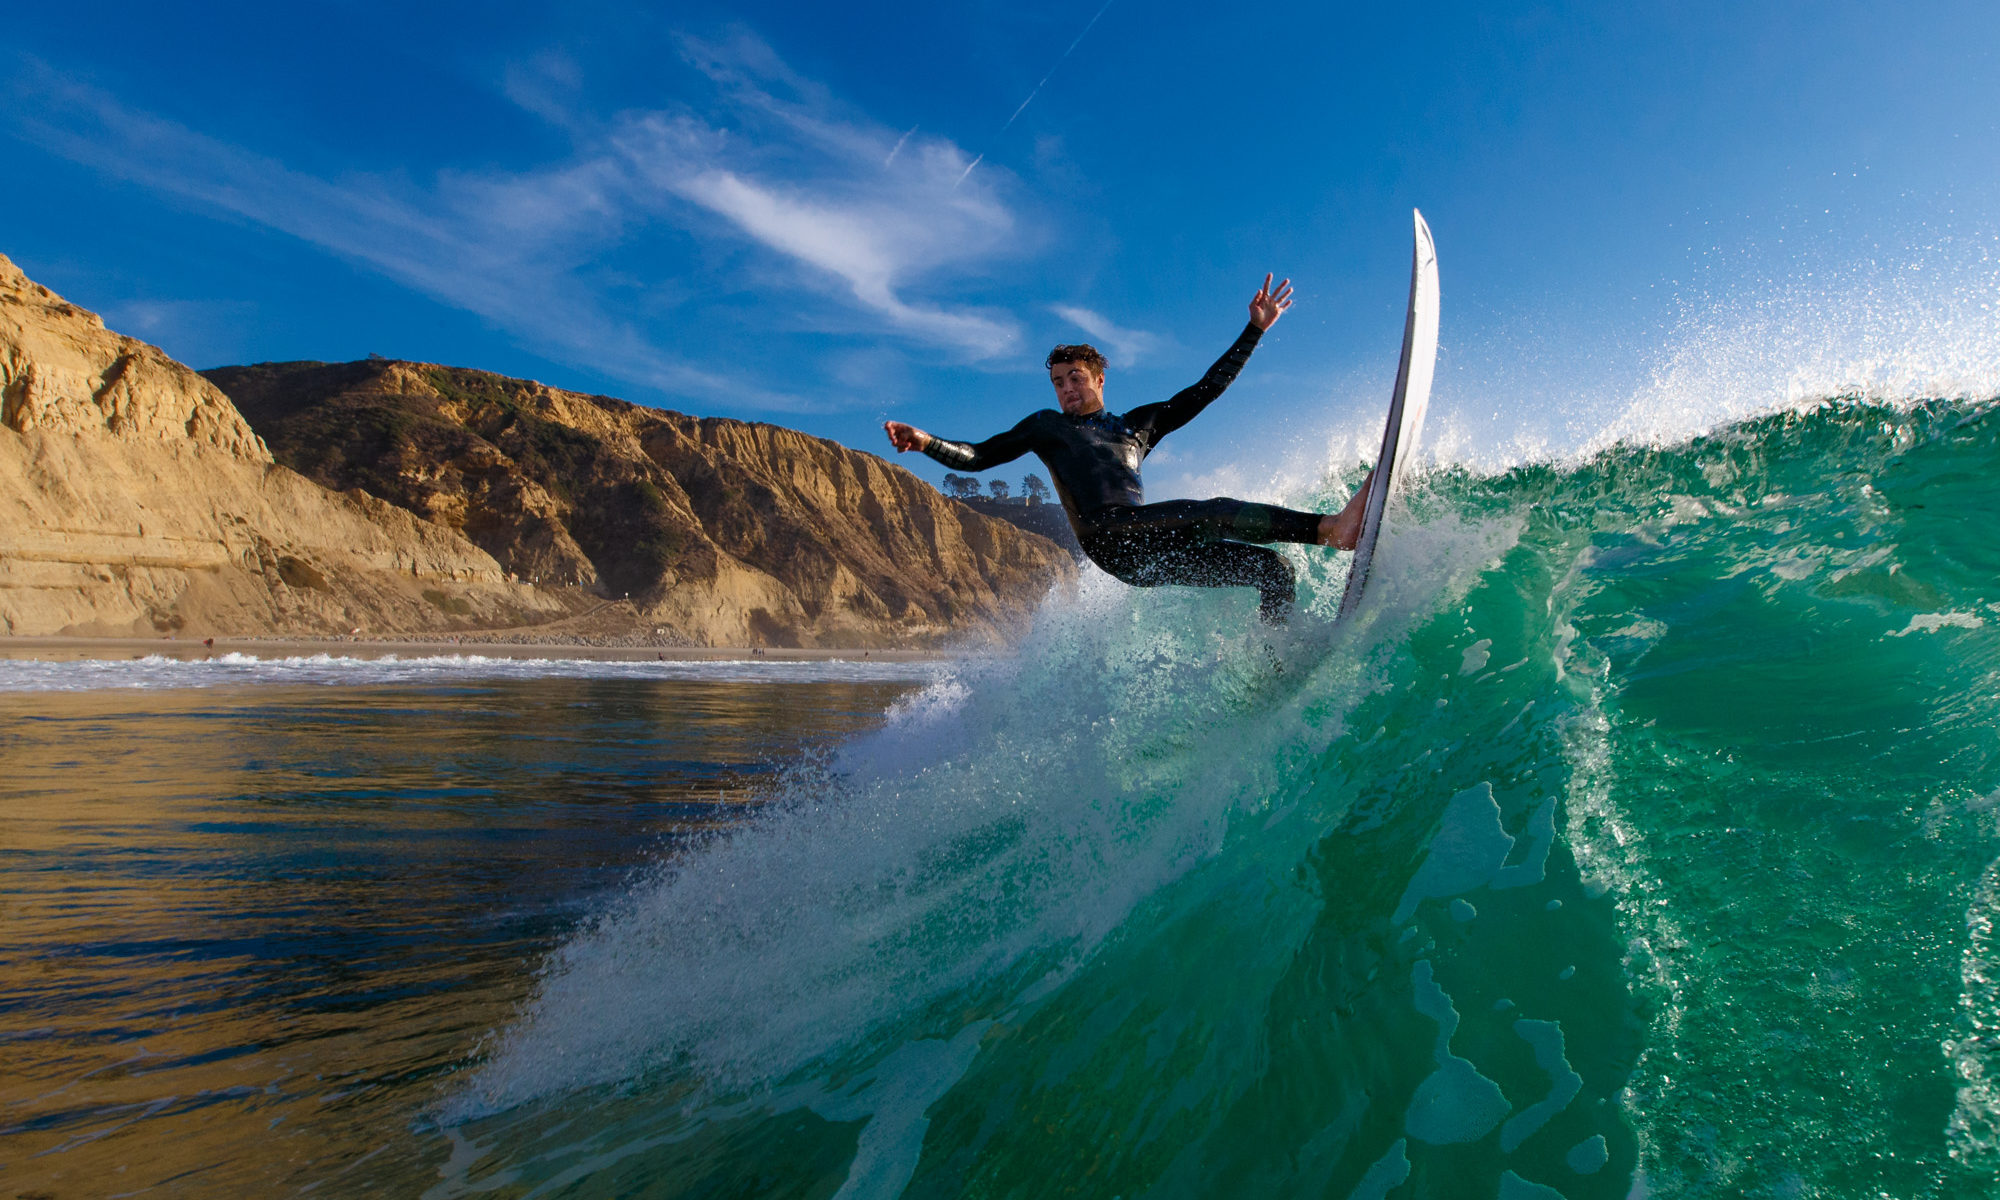 Water photo of surfing at Black's Beach in San Diego, California. Photo by San Diego surf photographer Mark Johnson/Ironstring